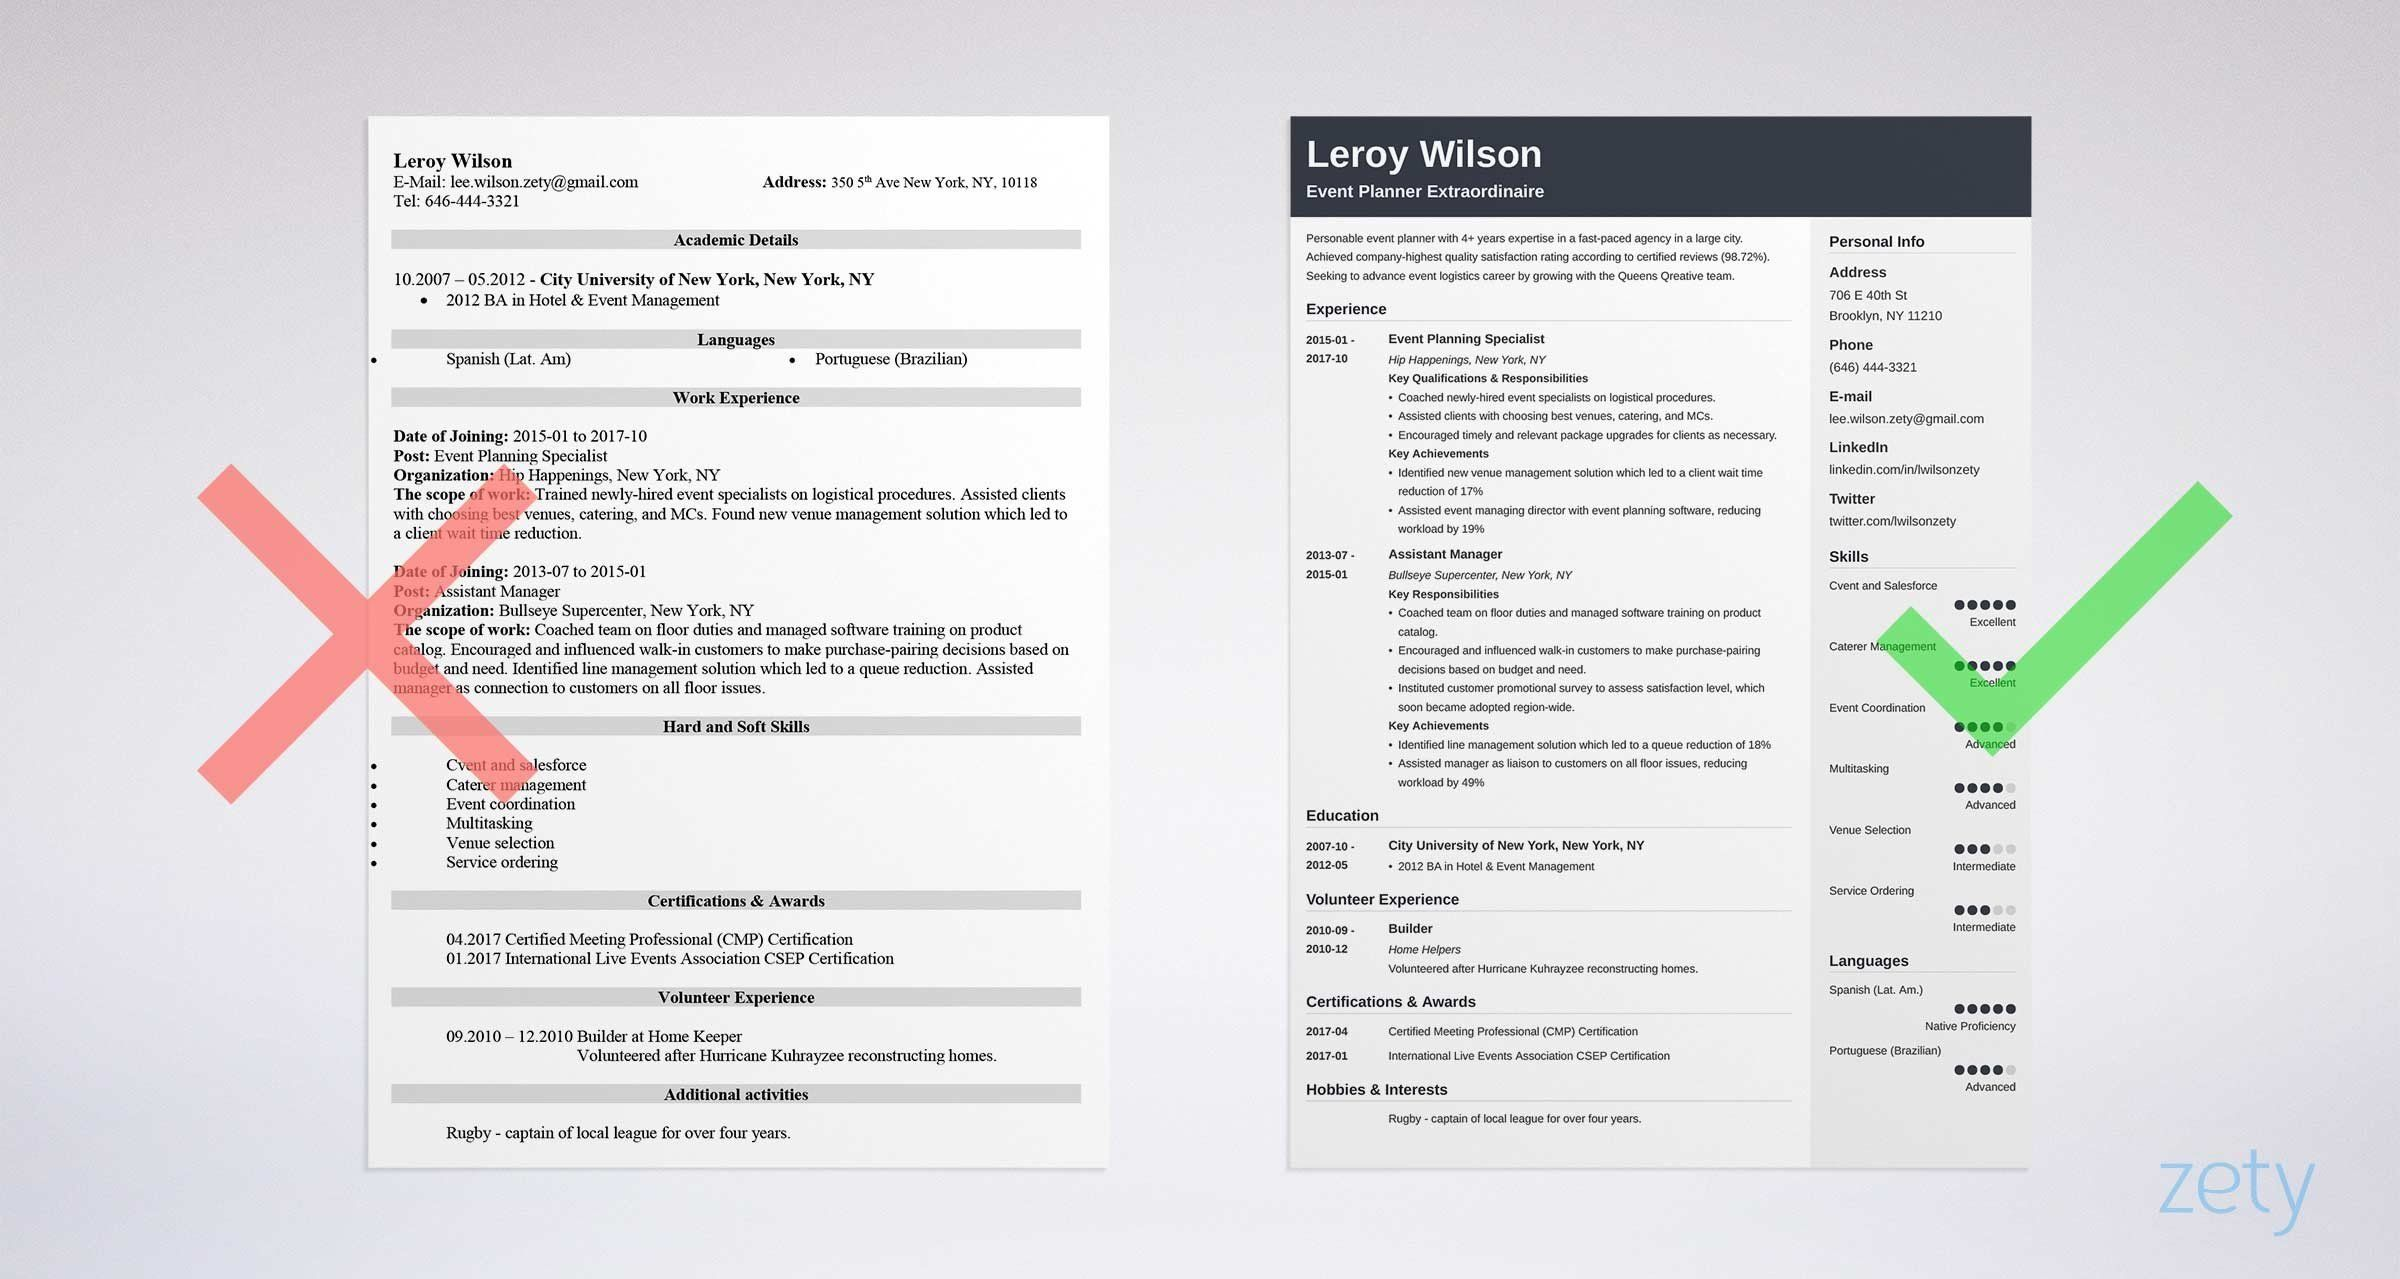 A stepbystep guide to writing an event planner resume